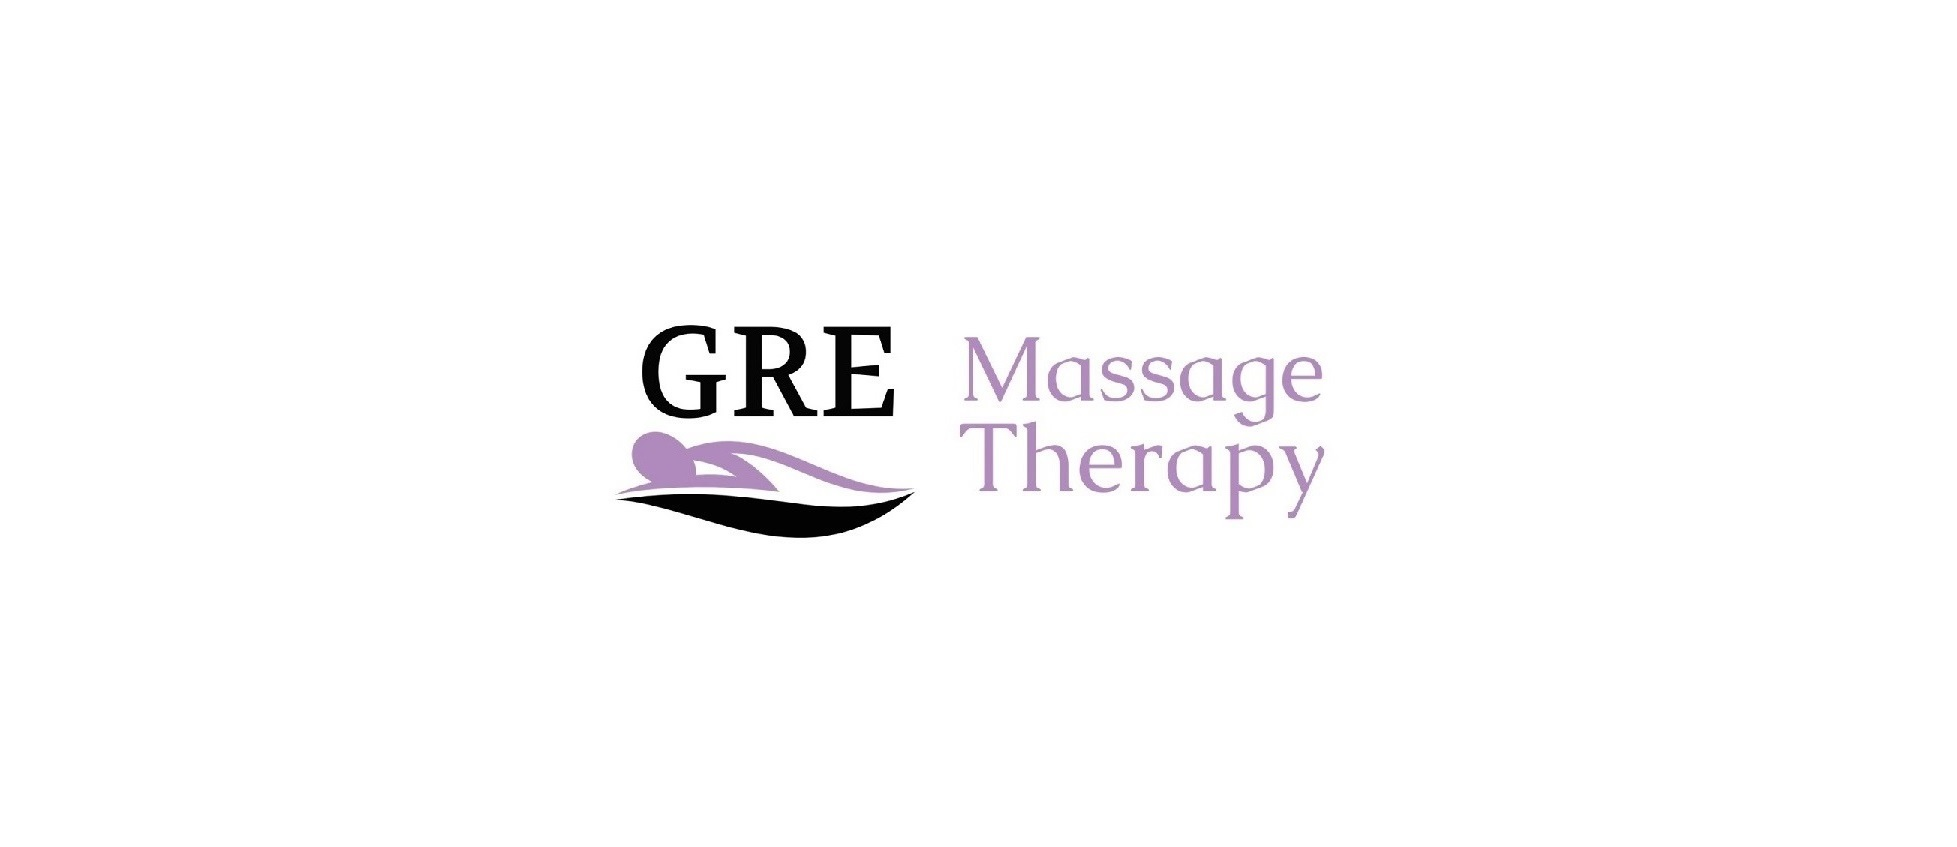 GRE Massage Therapy image